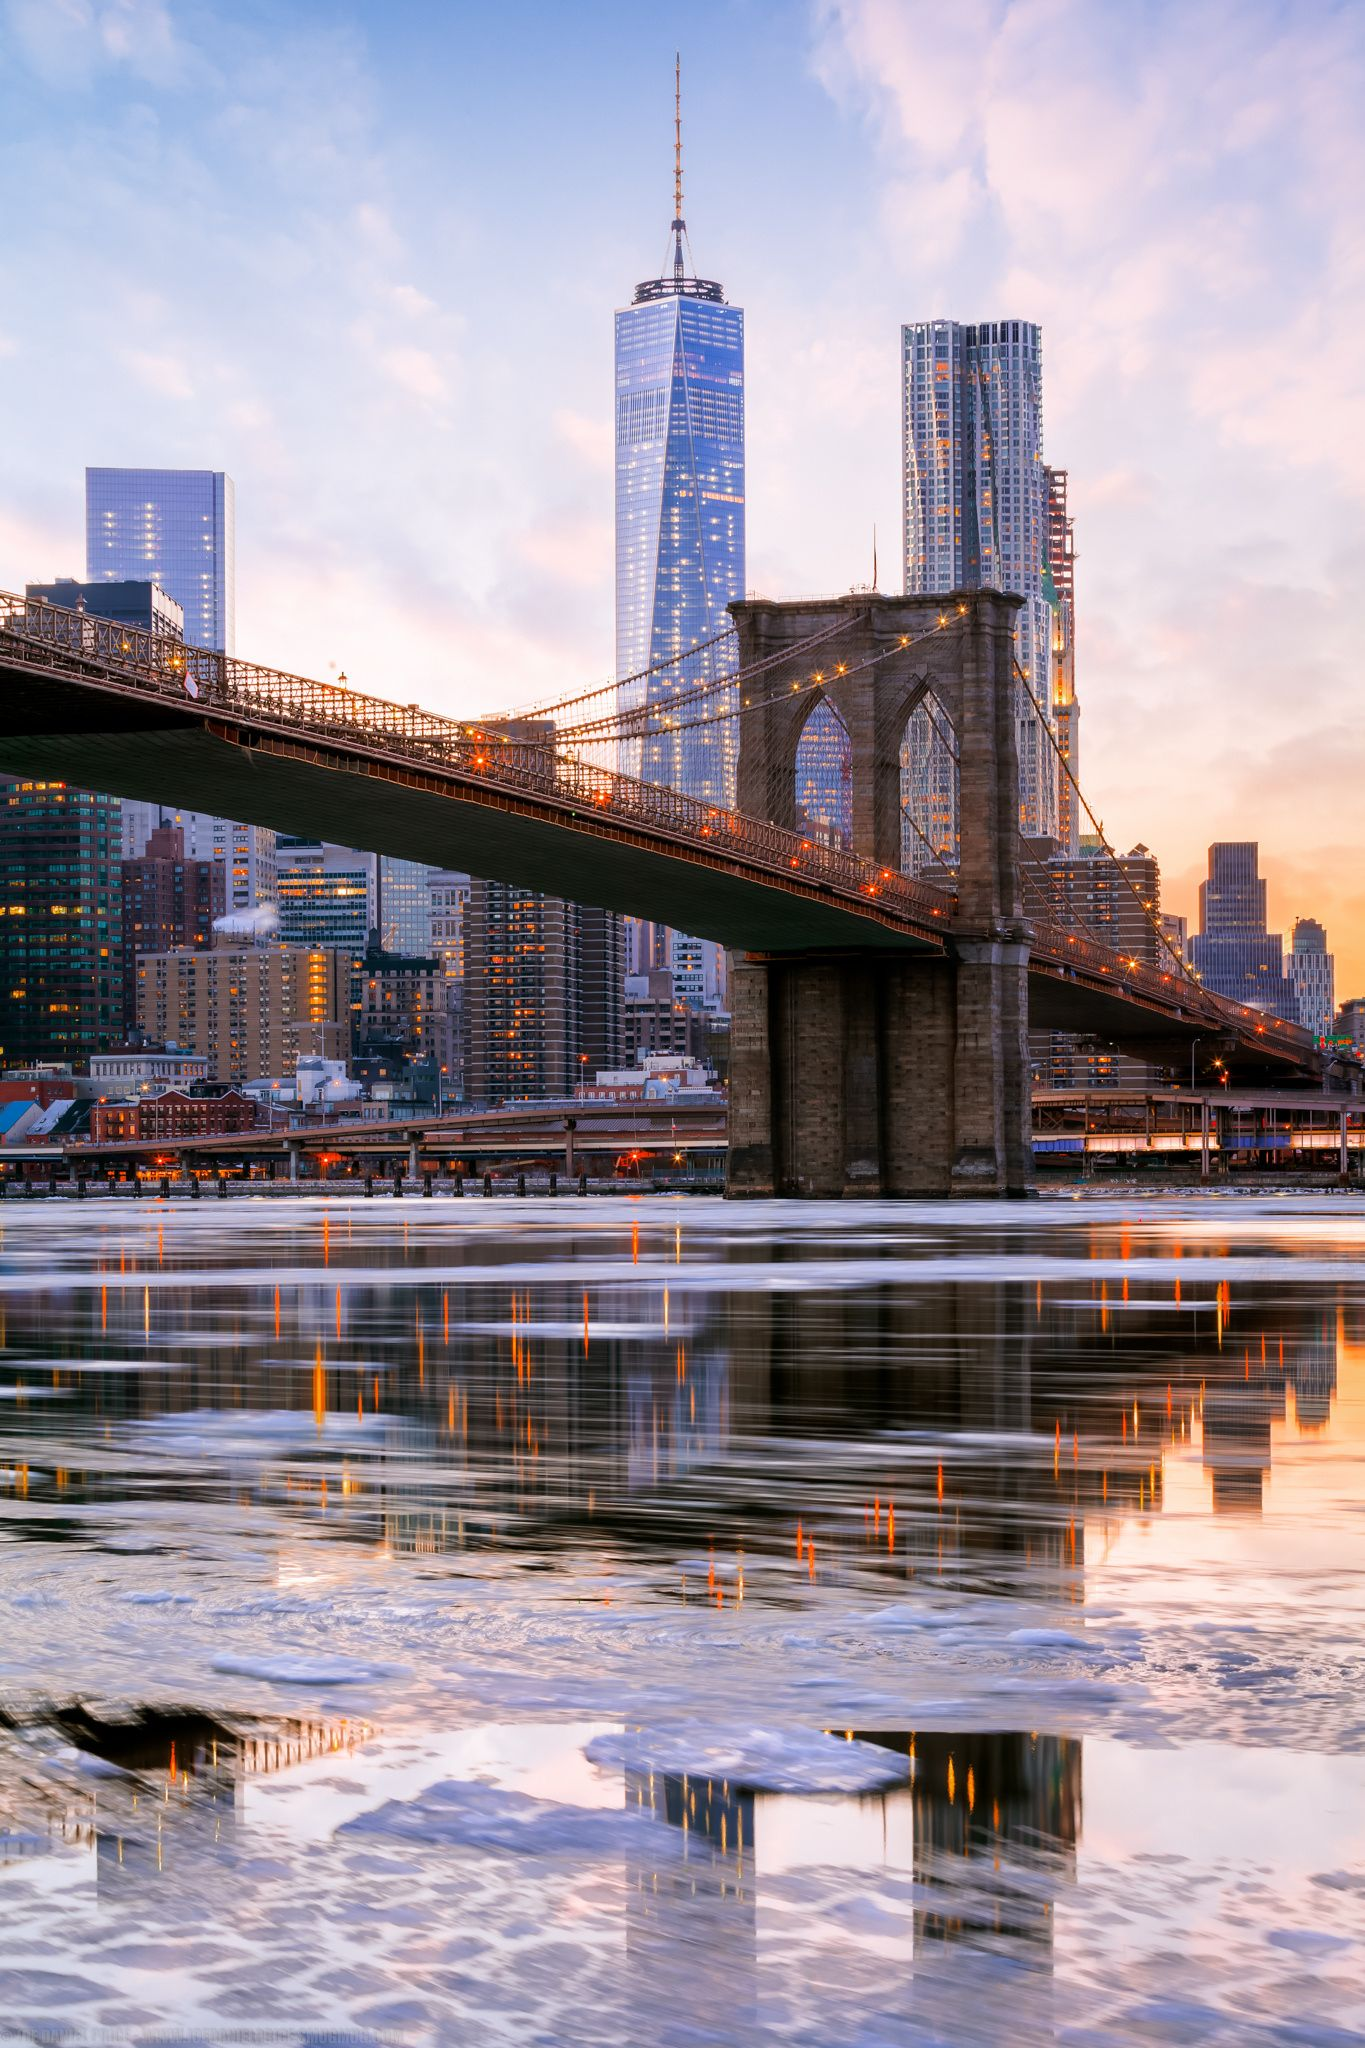 Icy East River, Freedom Tower, Brooklyn Bridge, New York